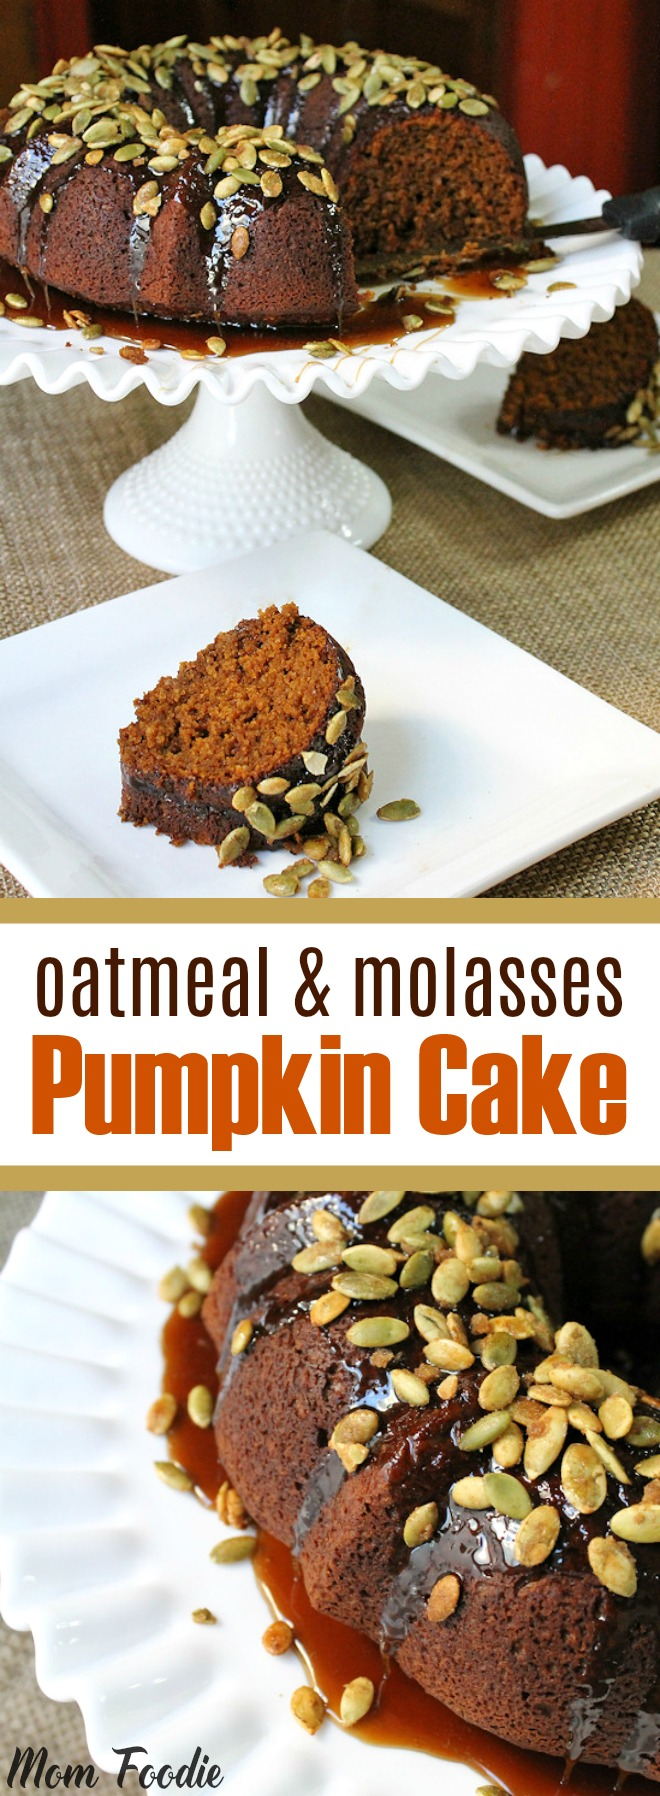 Oatmeal & Molasses Pumpkin Cake with Caramel Glaze and Candied Pumpkin Seed Topping